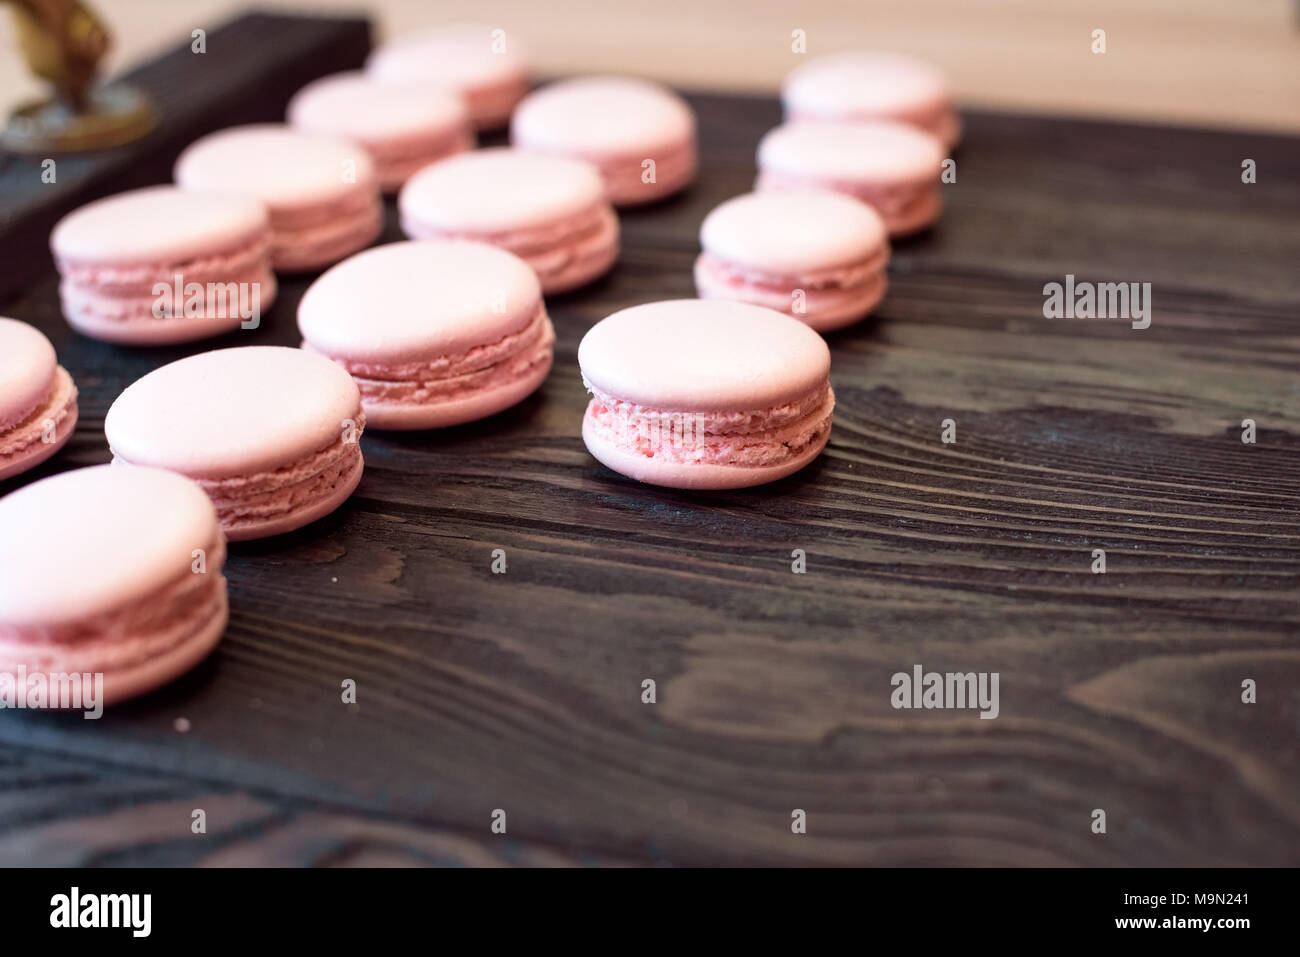 Pink macarons on wooden table Stock Photo